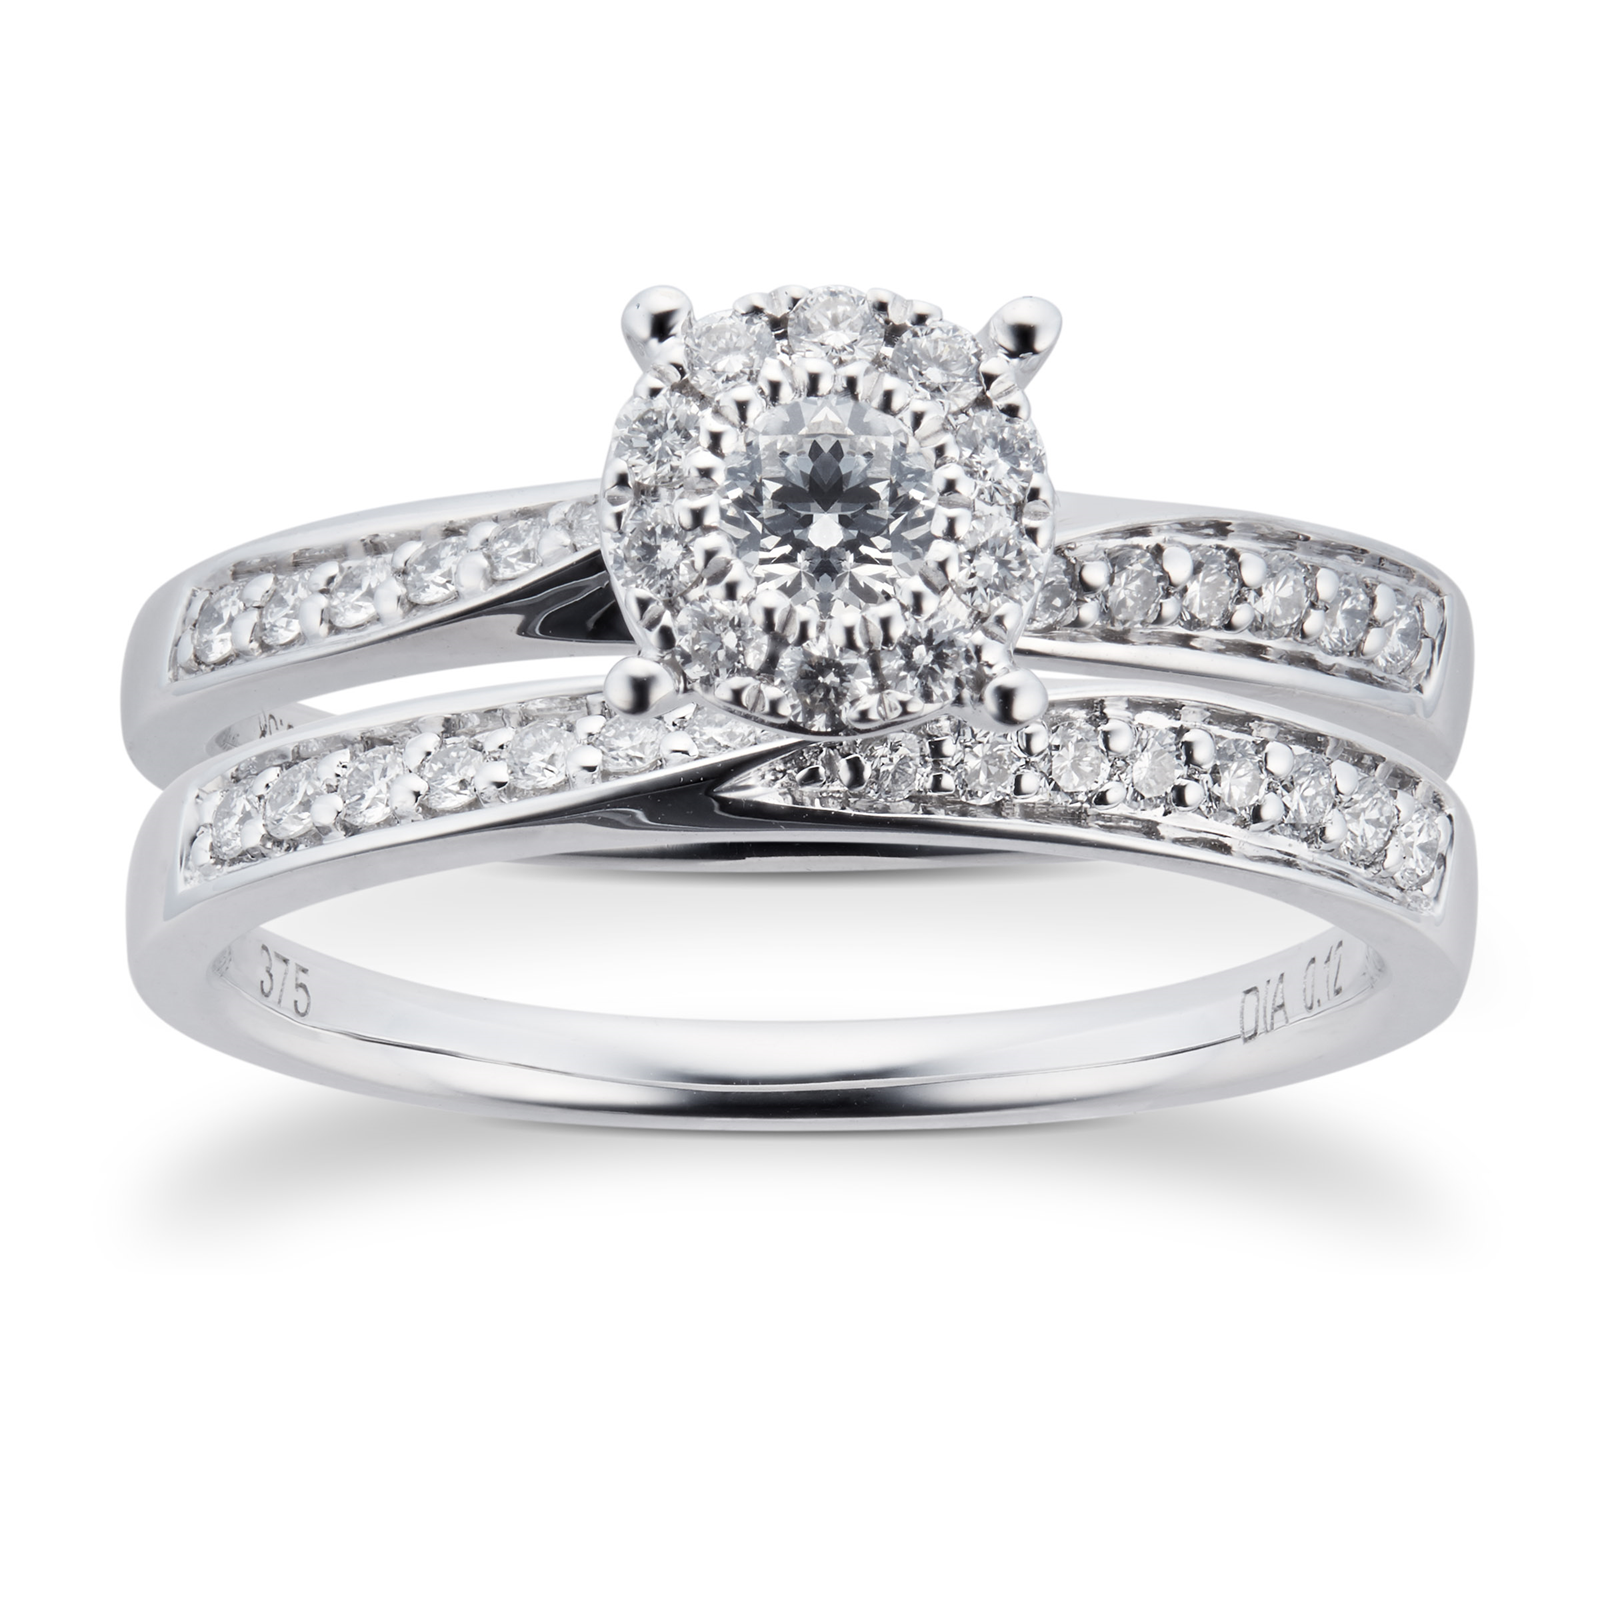 9ct White Gold Multistone Diamond Bridal Set - Ring Size J